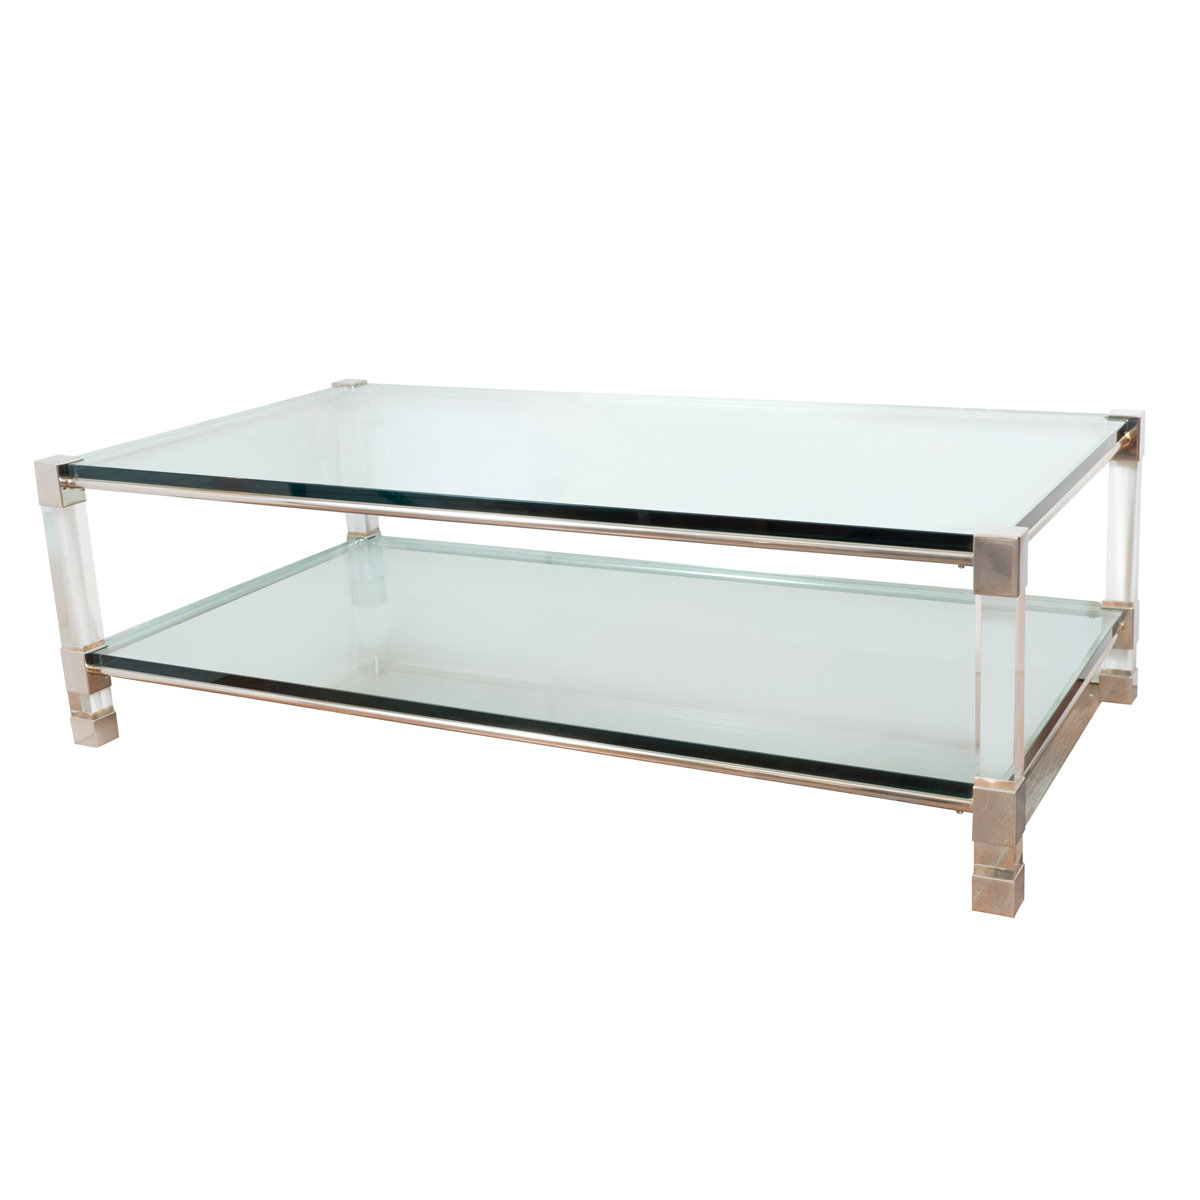 Two Tier Chrome And Lucite Coffee Table Coffee Tables John Salibello